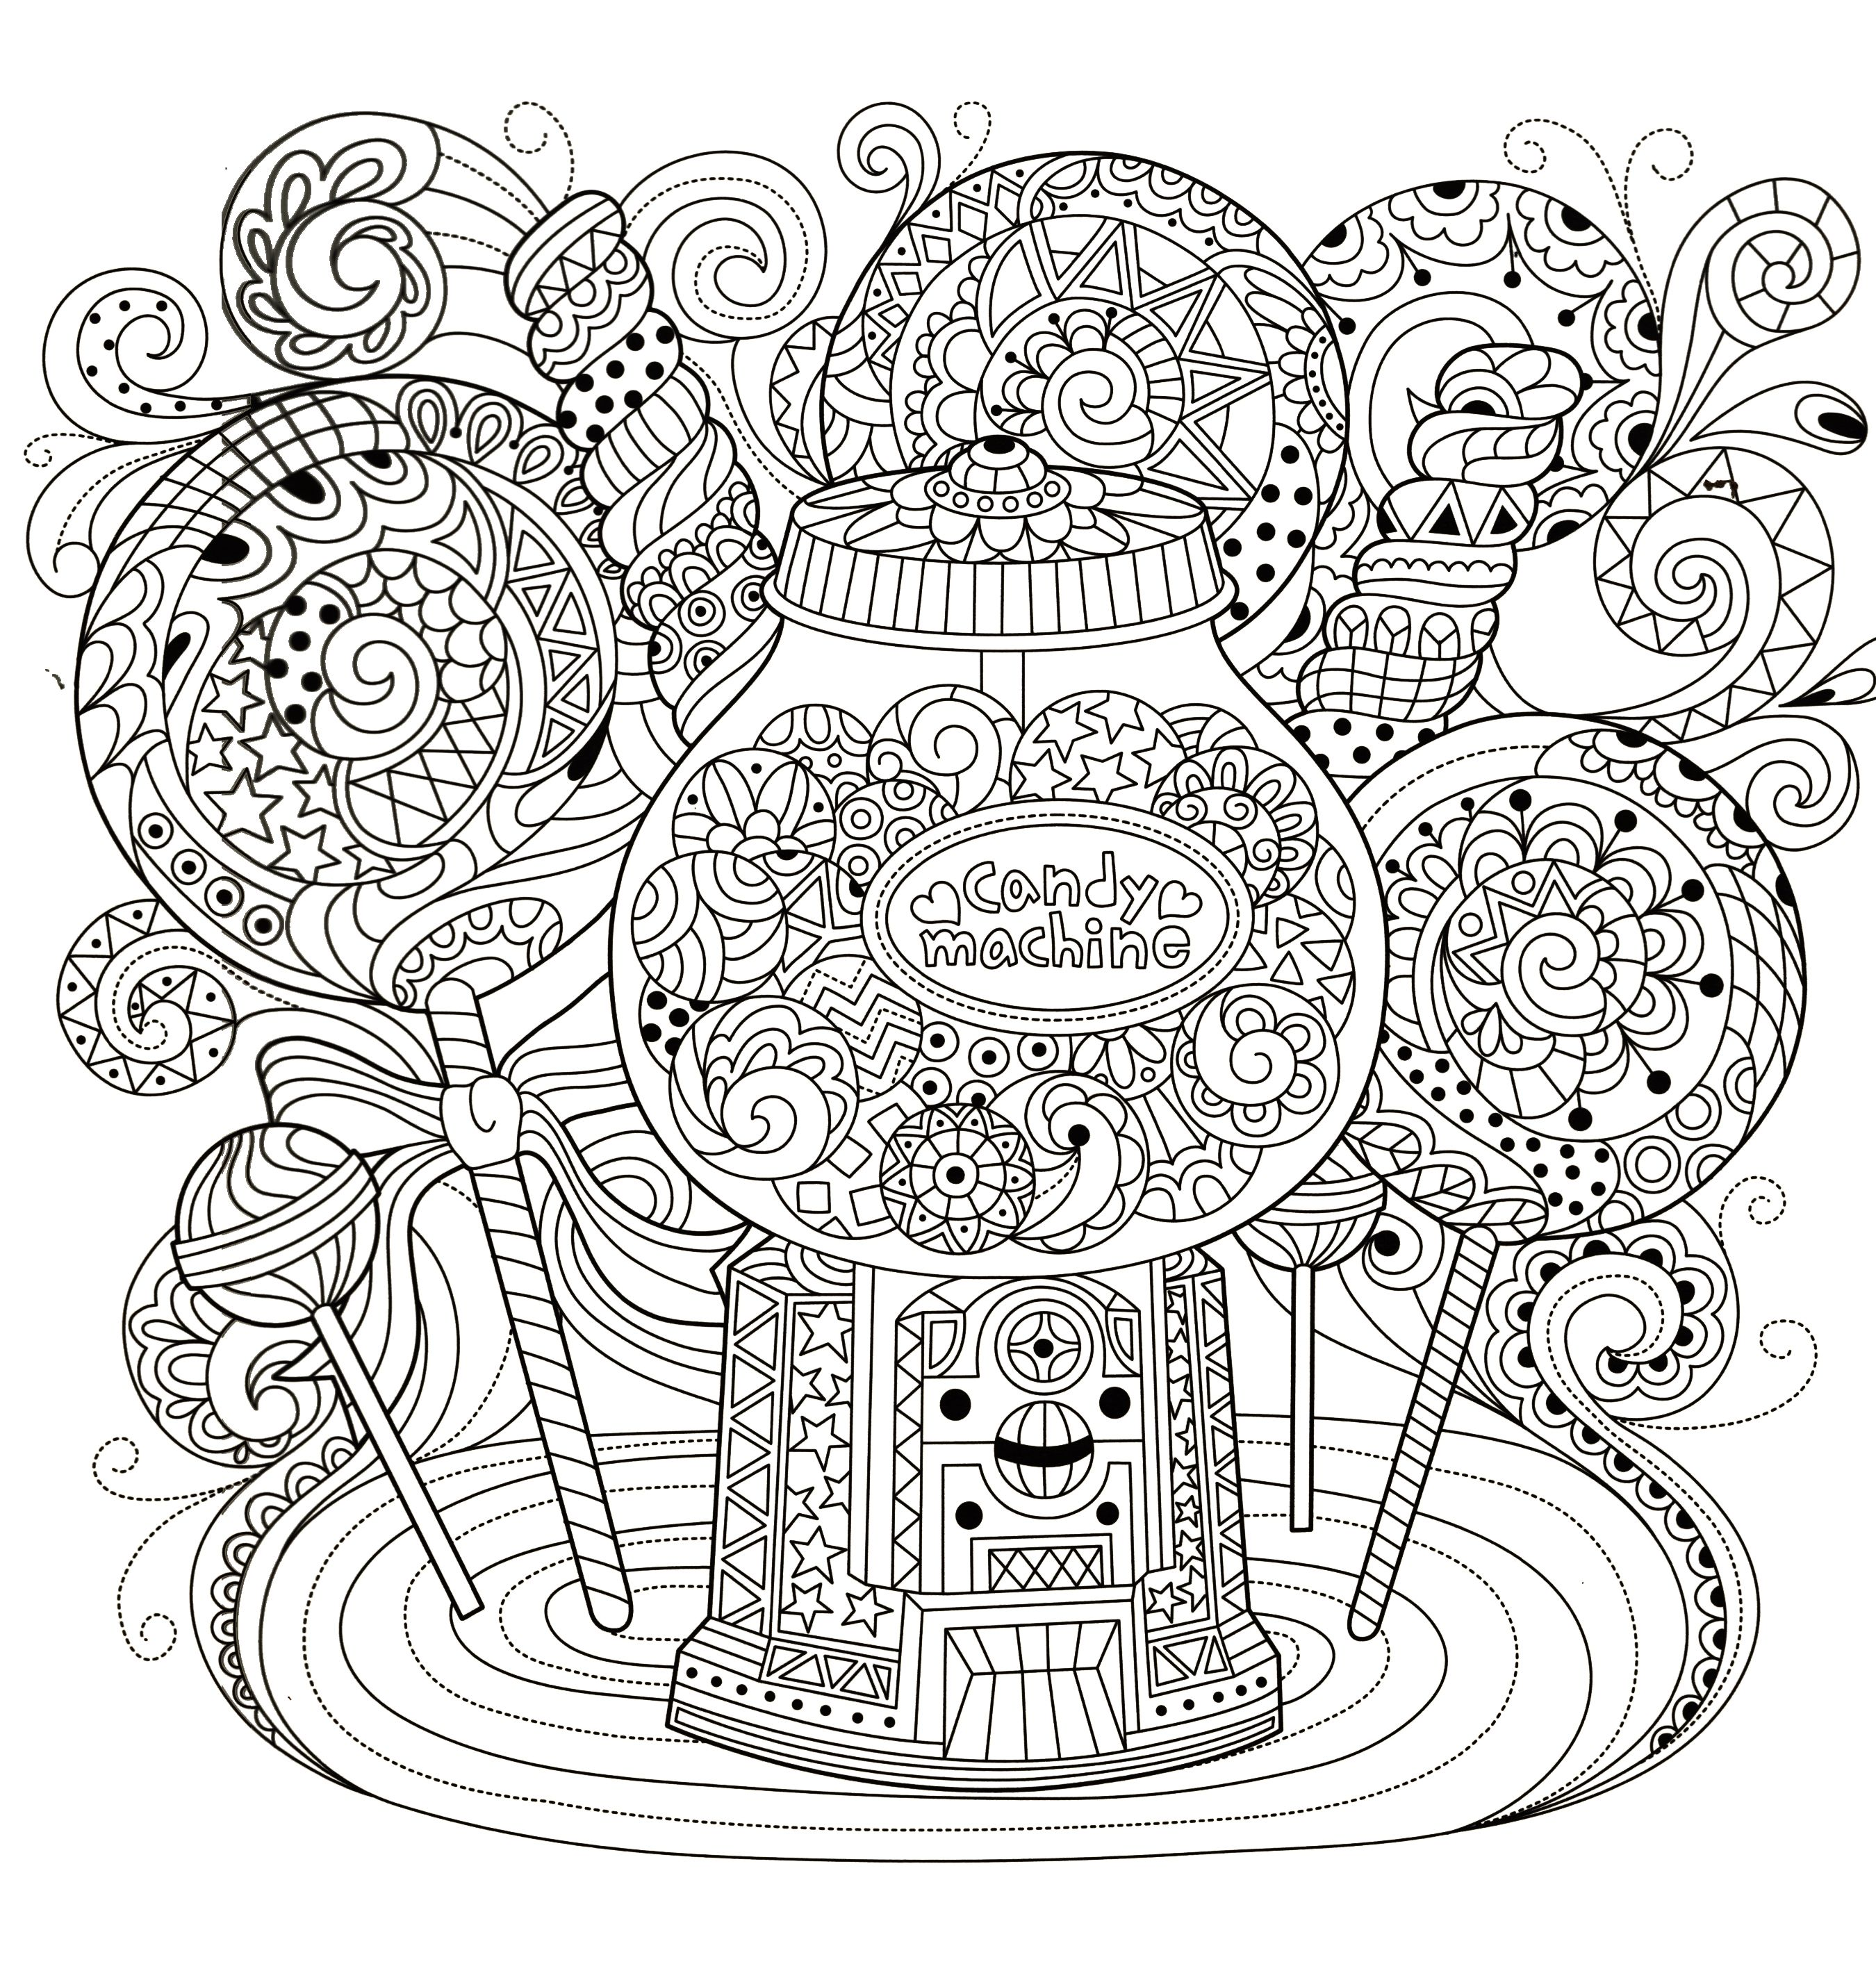 Mandala coloring pages image by Gena Andreano on Coloring ...